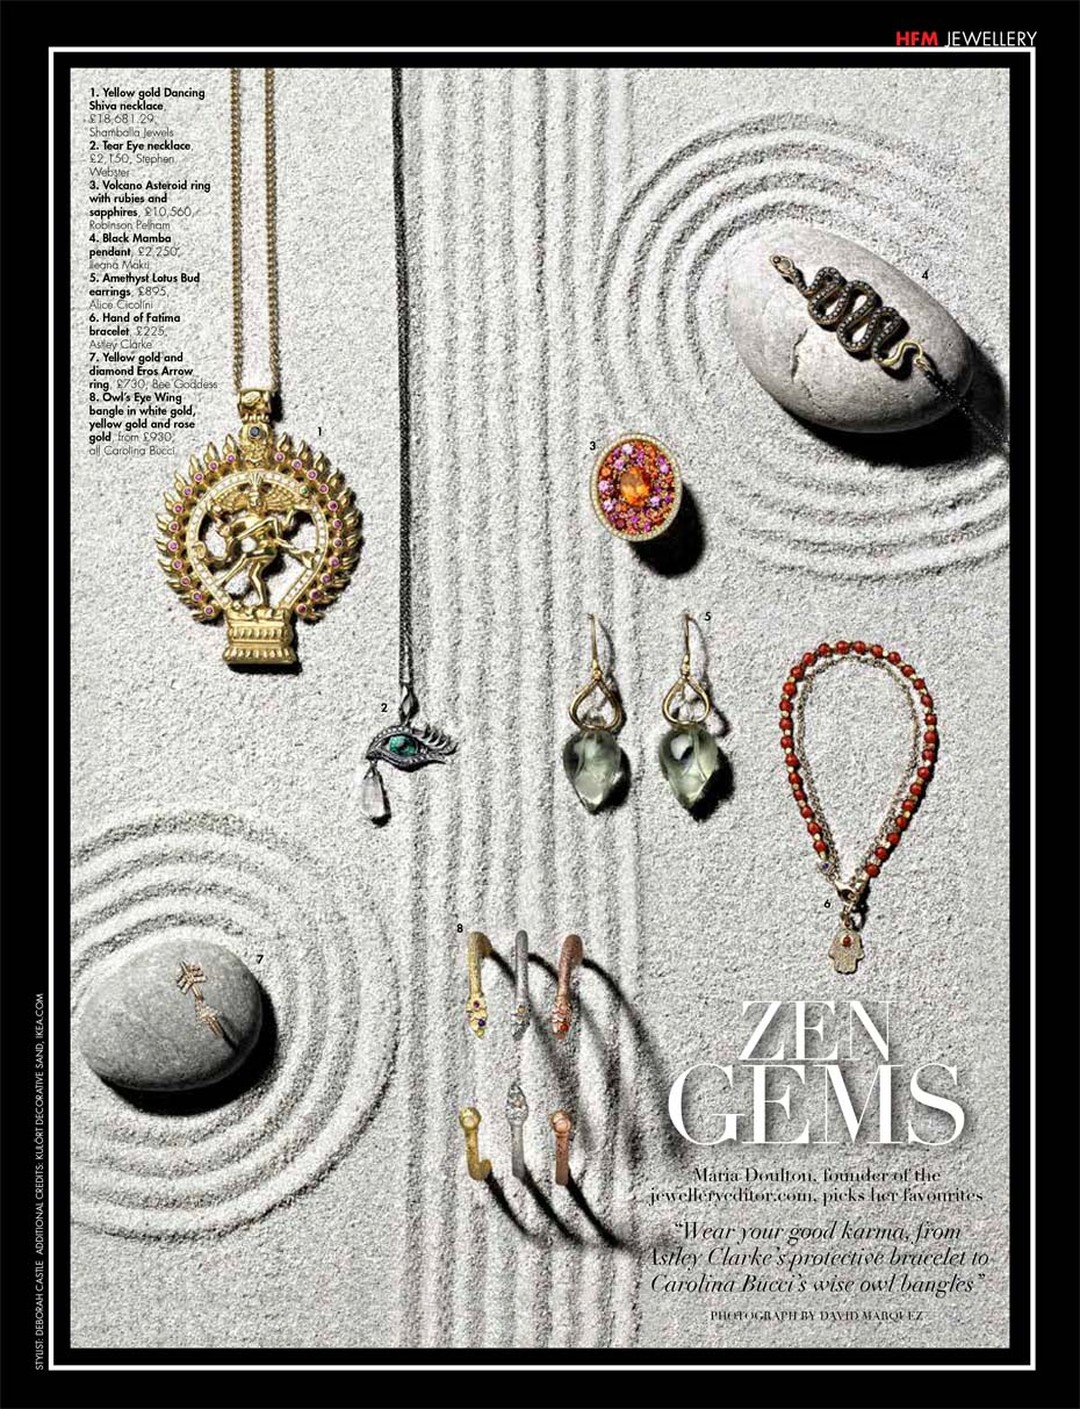 A photo shoot of zen gems for Hello! Fashion magazine, with jewels chosen by The Jewellery Editor.